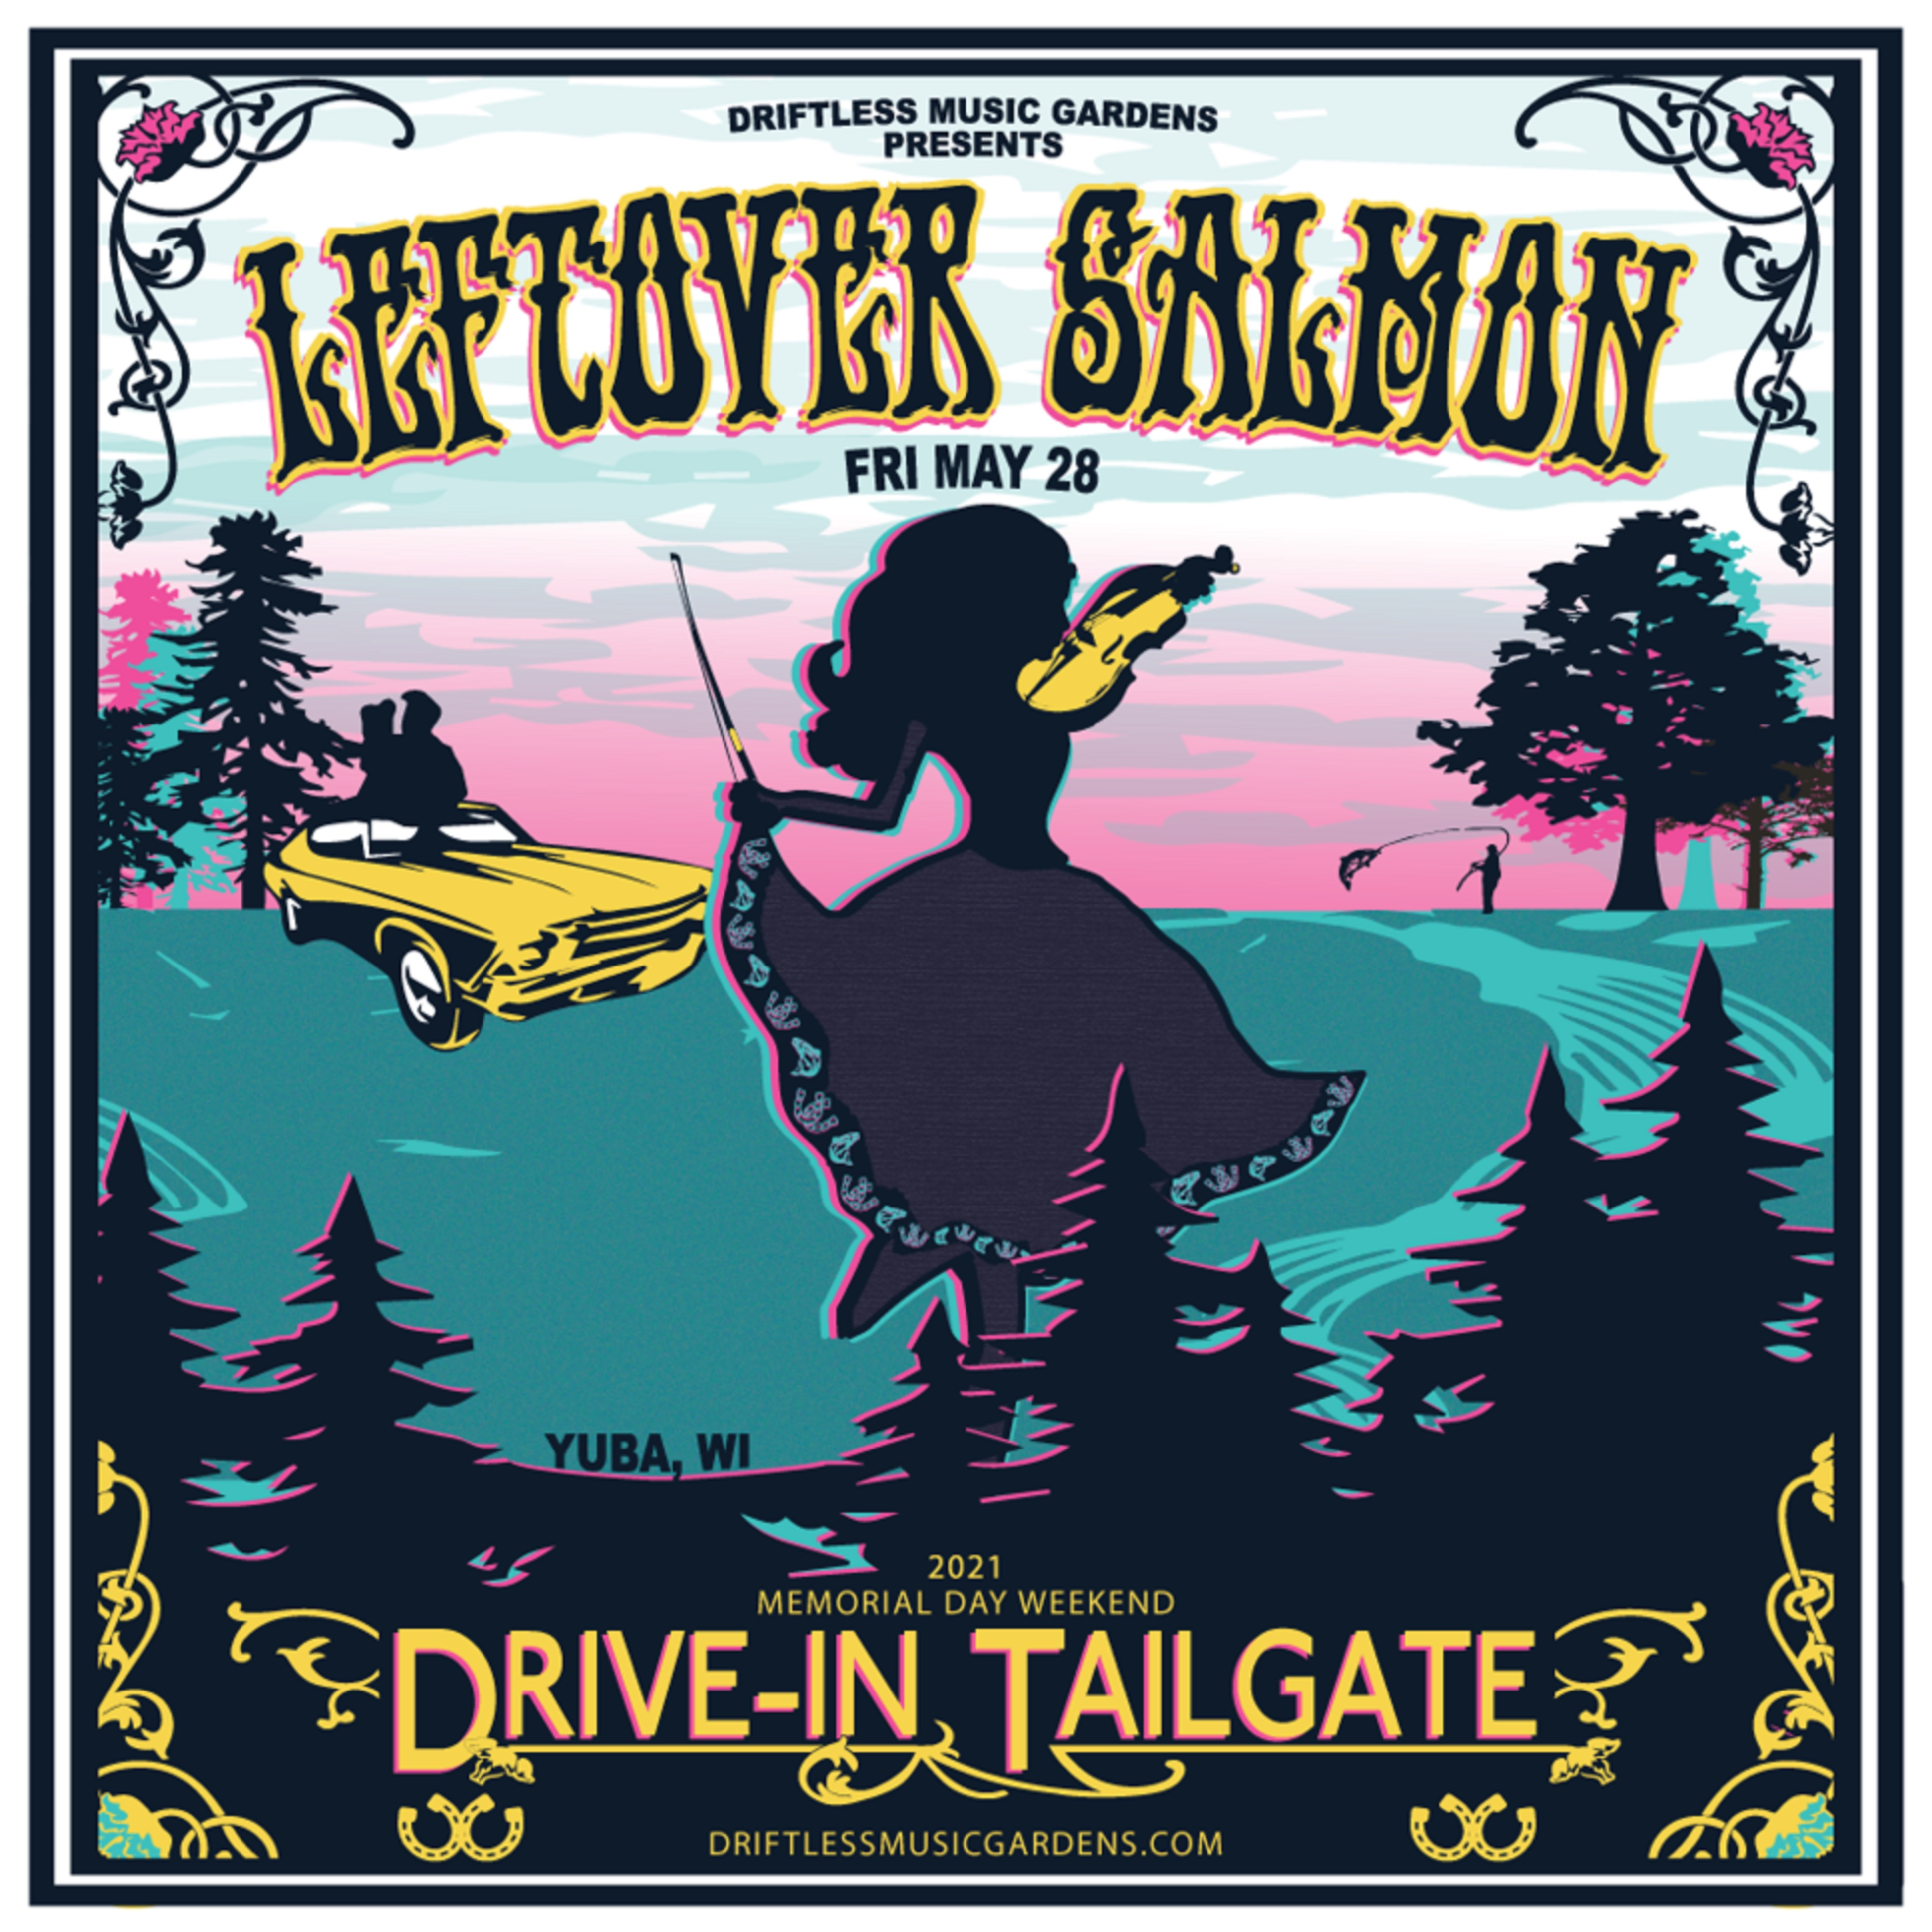 Leftover Salmon To Play Driftless Music Gardens' Memorial Day Drive-In Tailgate Concert Series